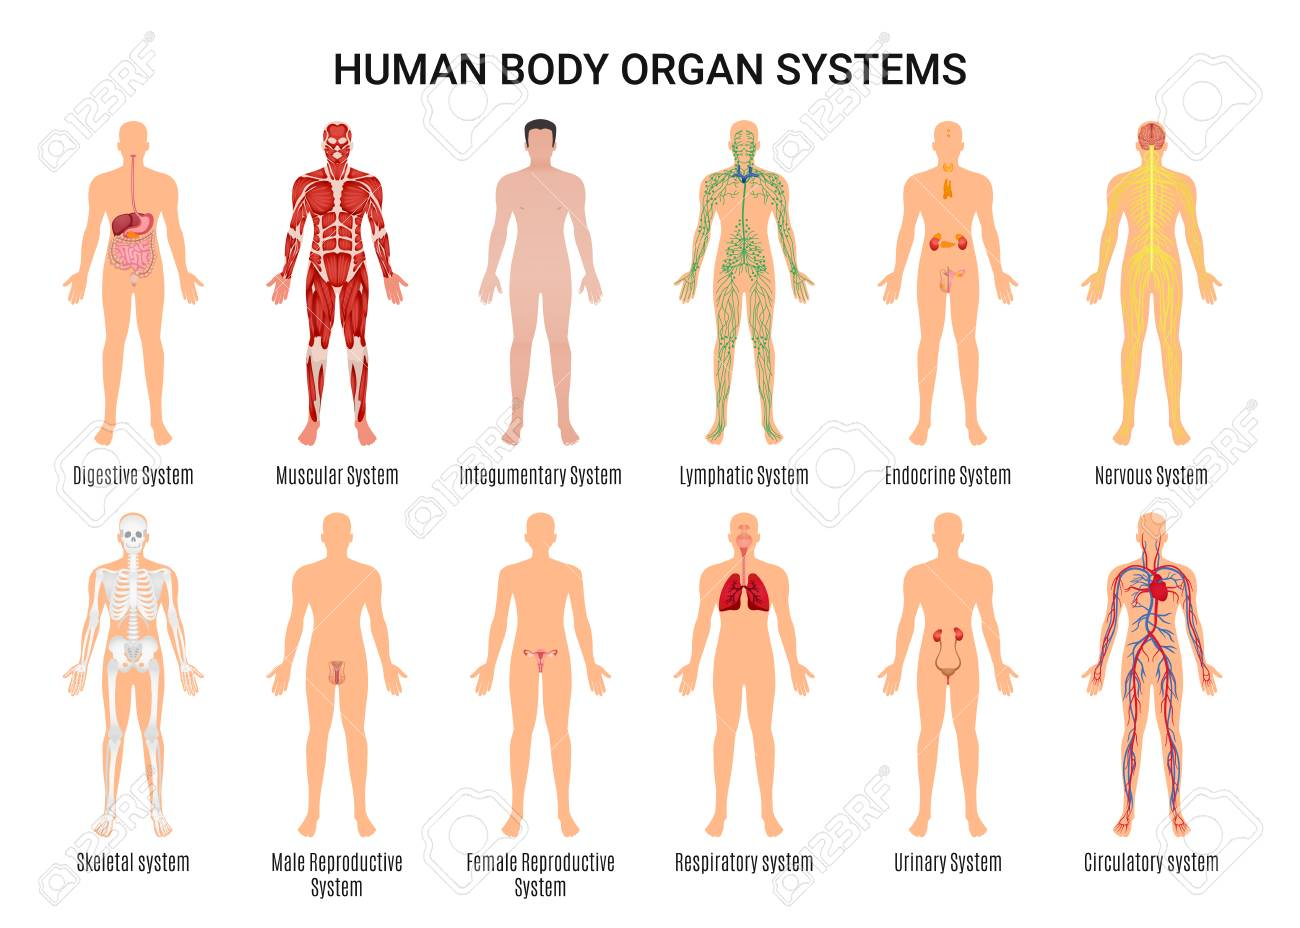 Main 12 Human Body Organ Systems Flat Educative Anatomy Physiology ...